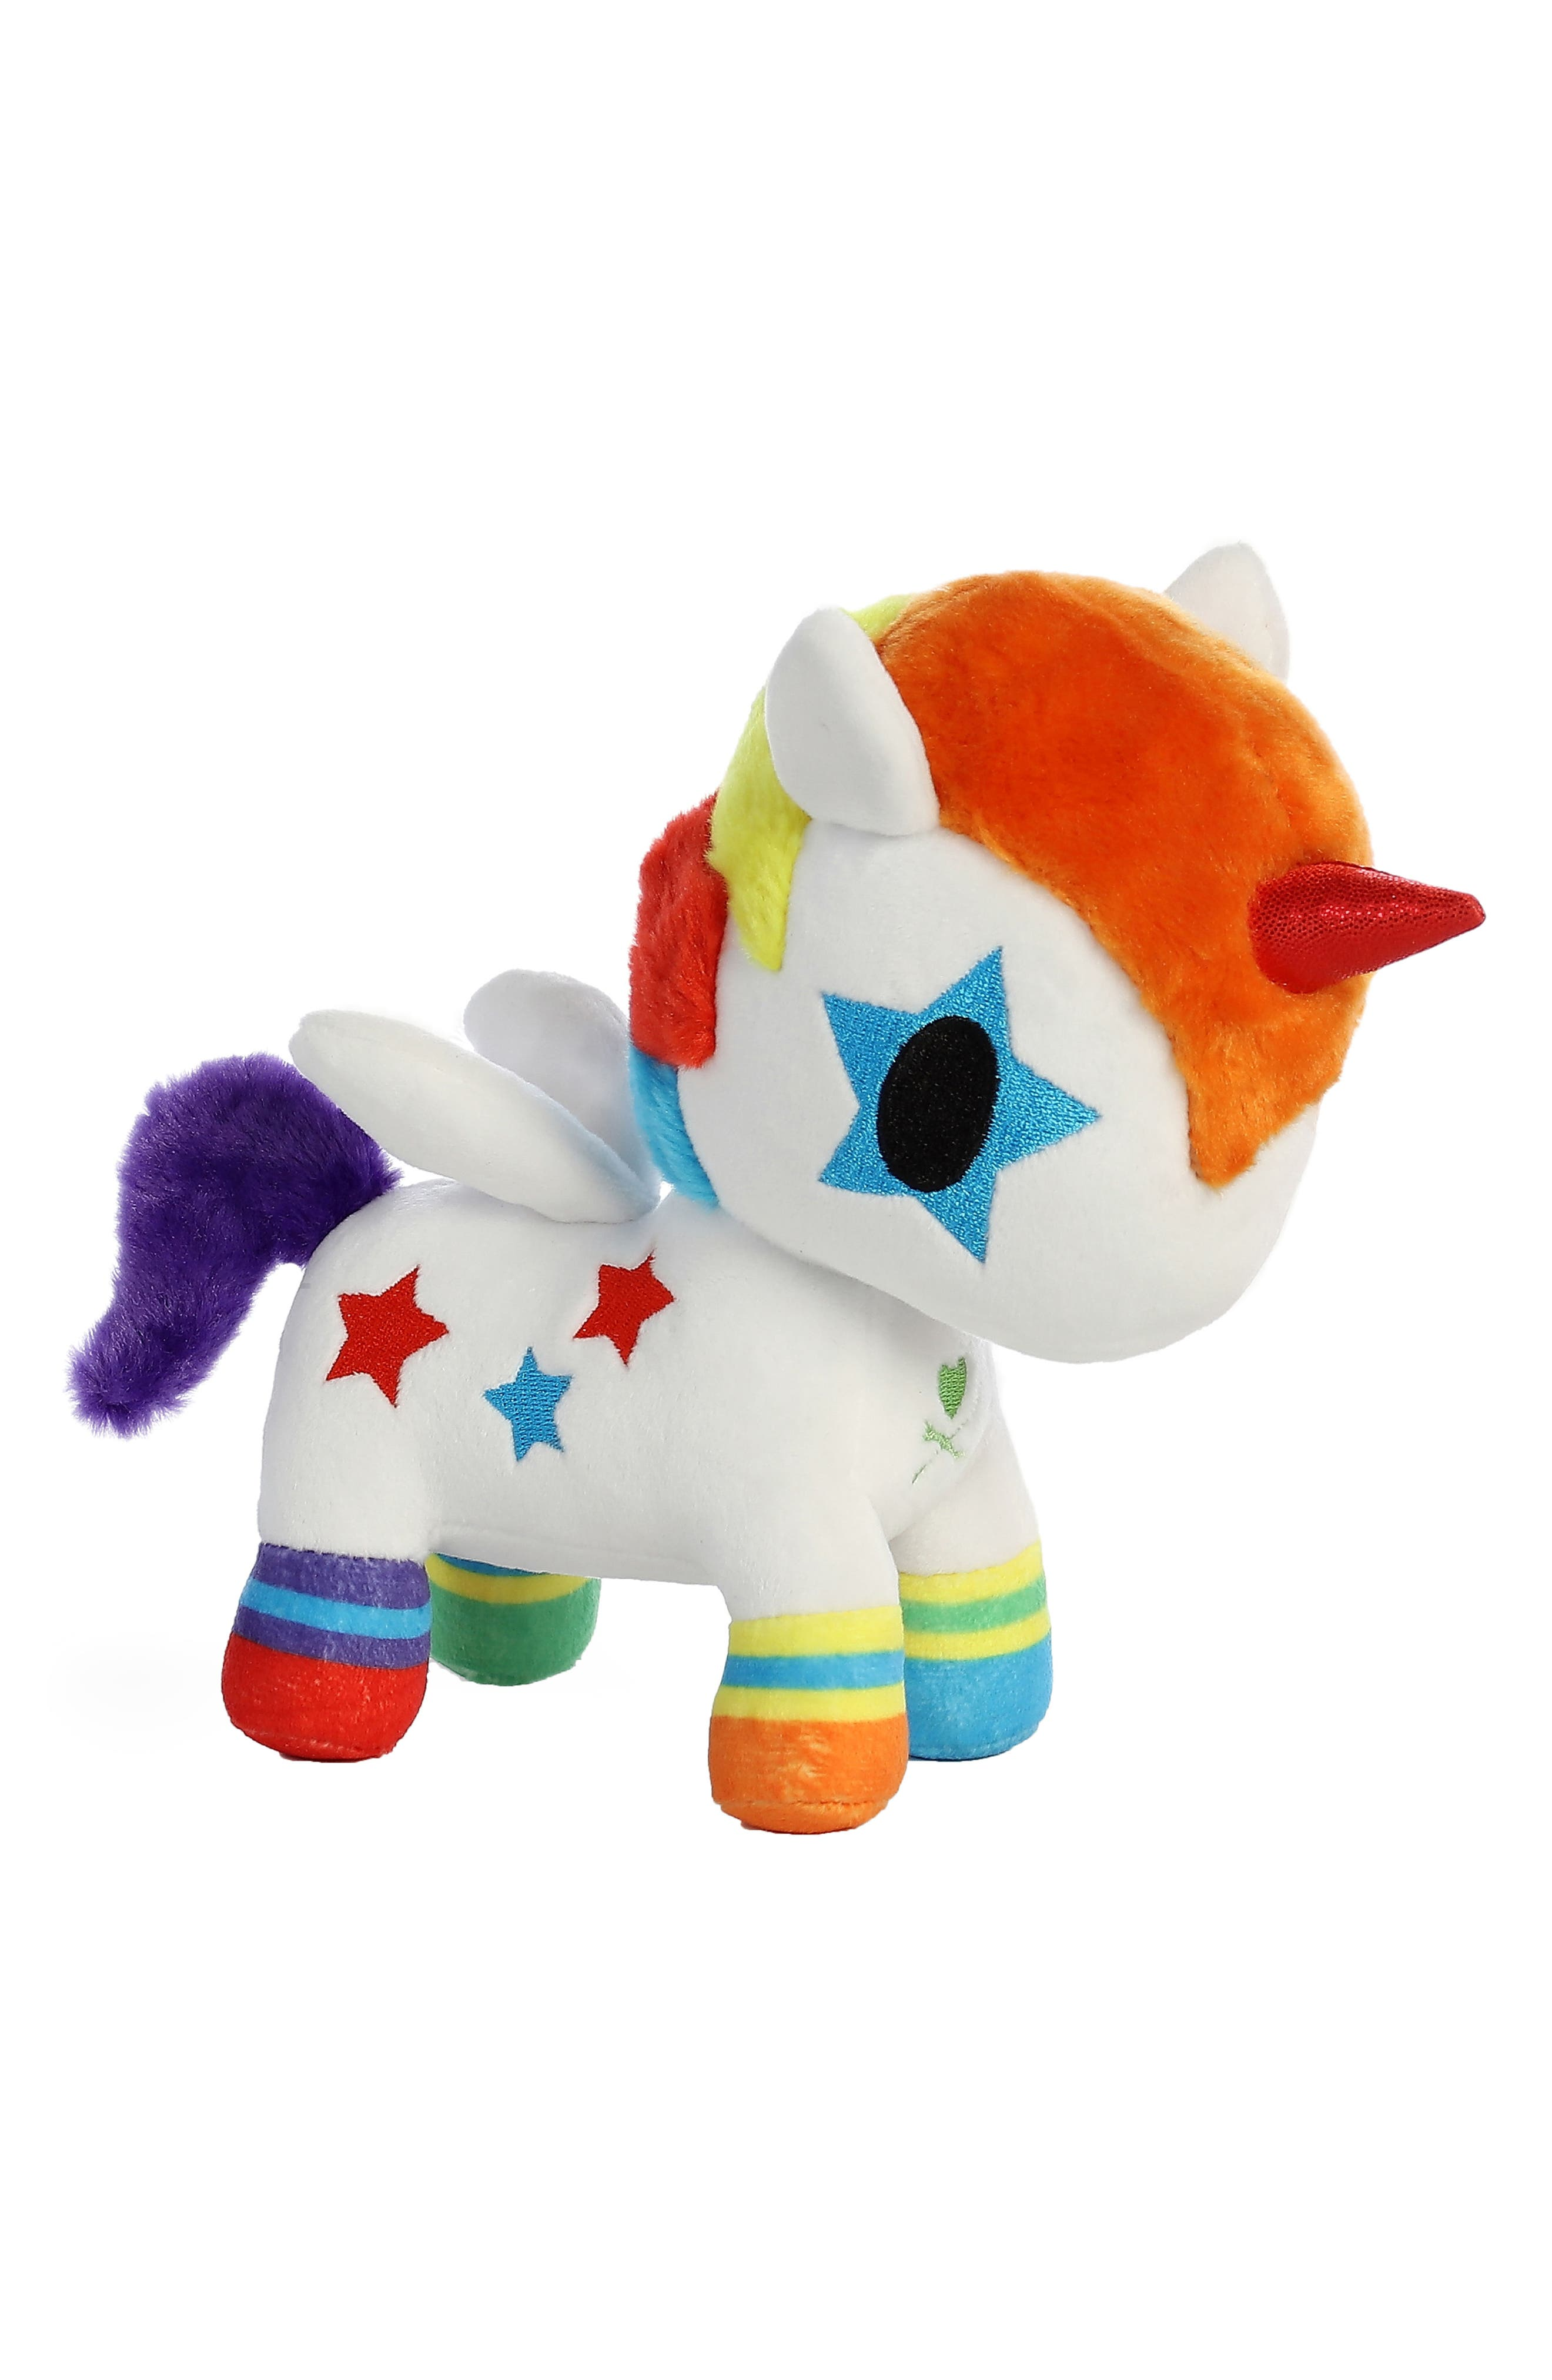 x tokidoki Bowie Unicorno Stuffed Animal,                             Alternate thumbnail 2, color,                             Orange